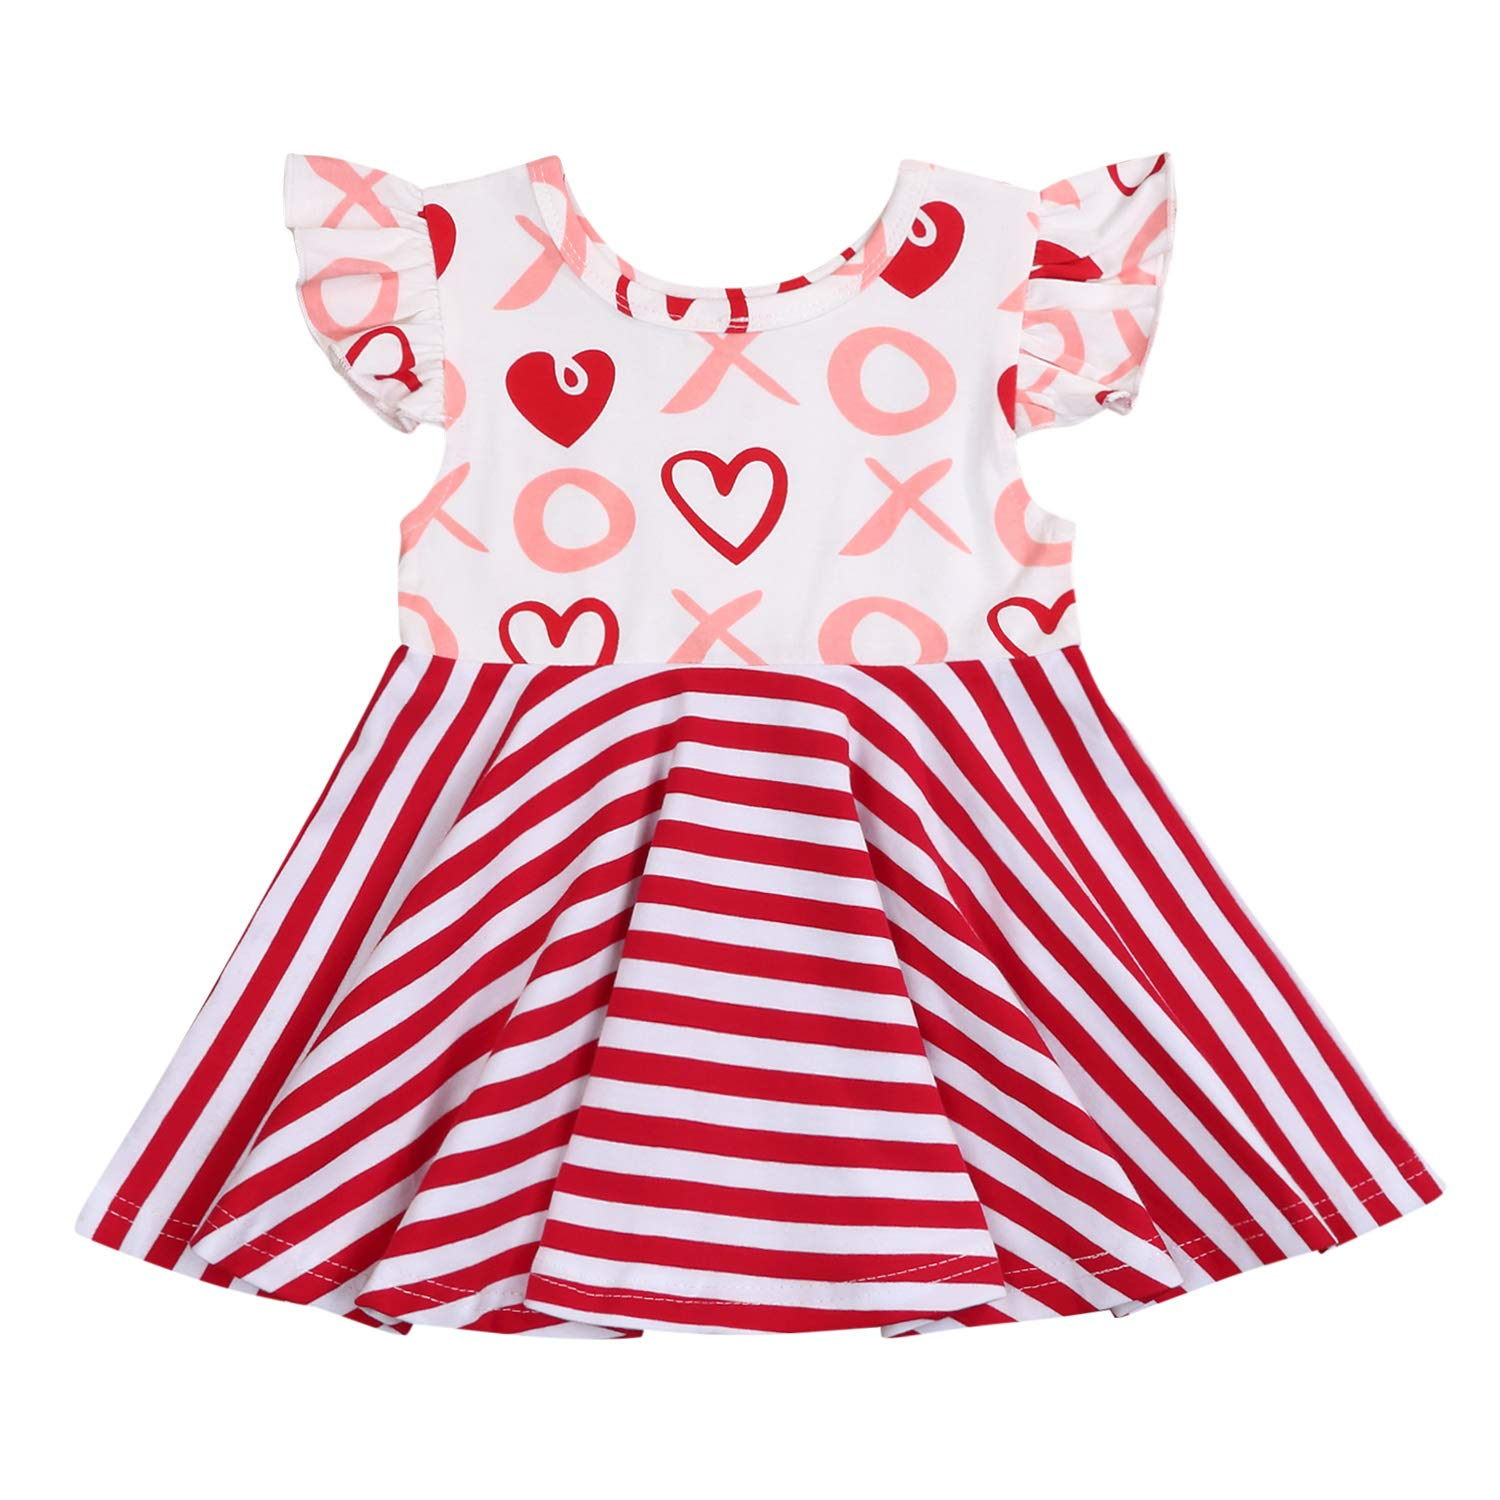 Toddler Girls Valentines Day Dress Baby Ruffled Stripe Love Heart Print Princess Sundress One-Piece Clothes